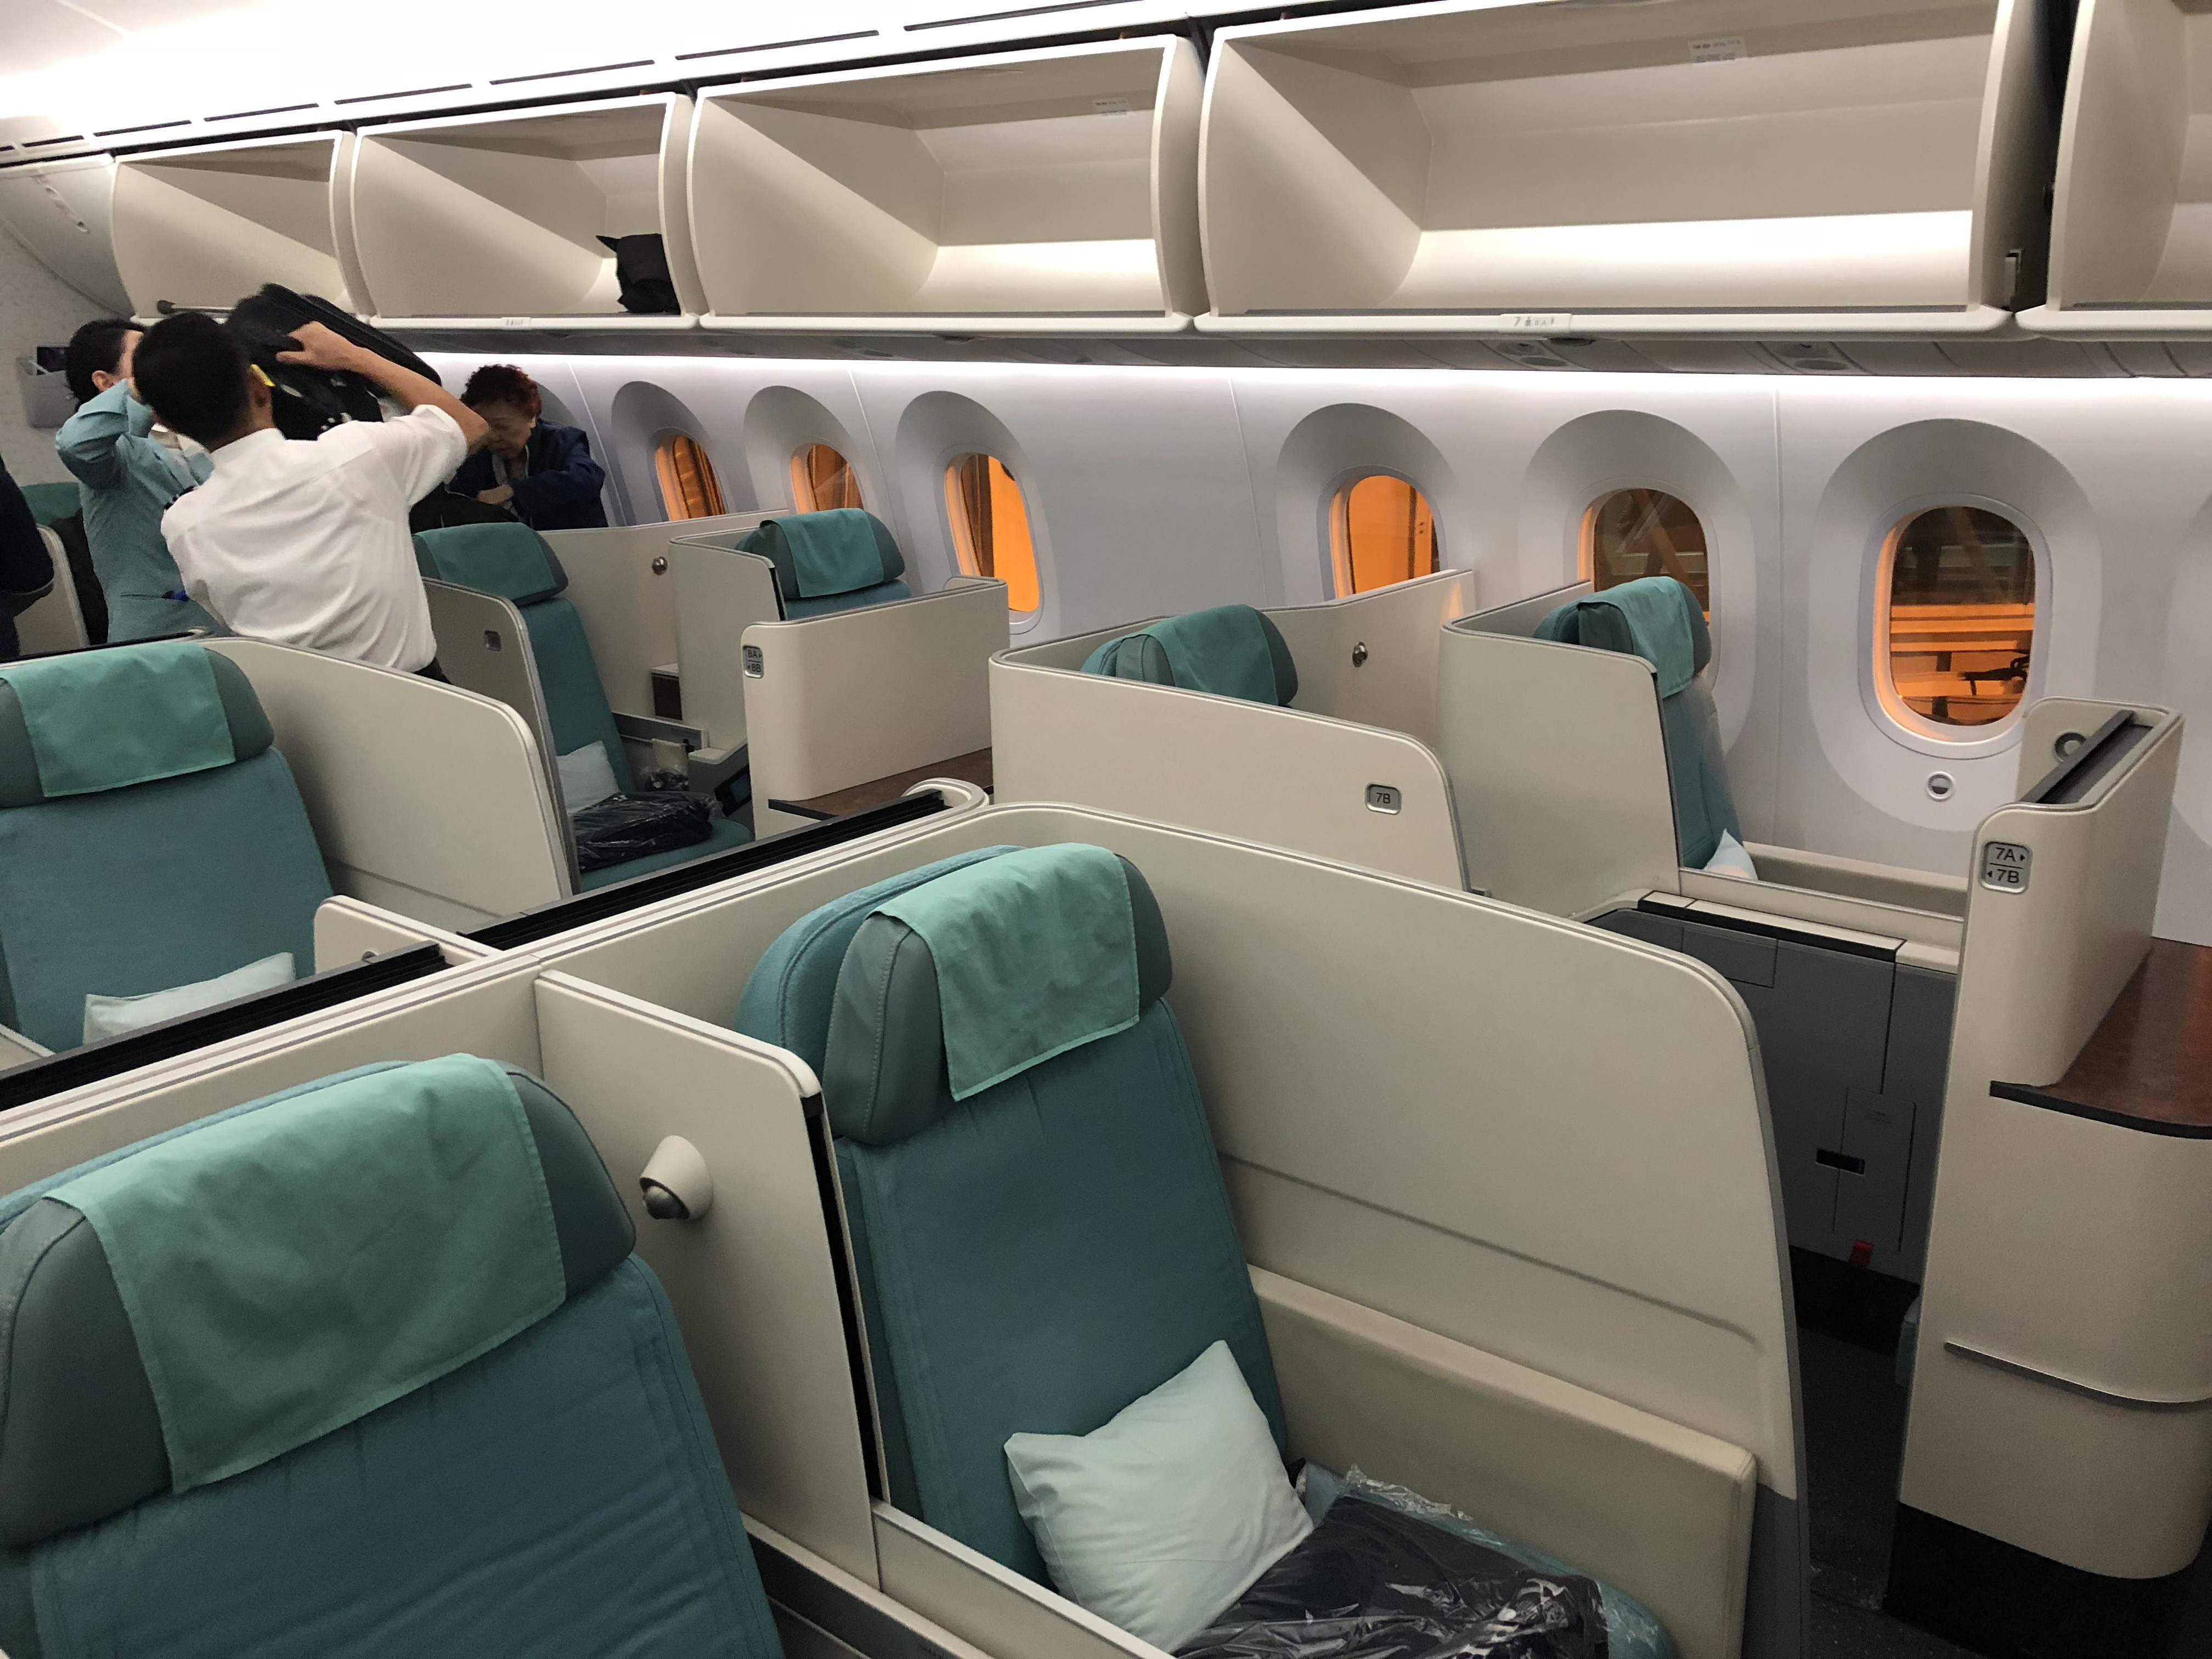 flight review seoul to hong kong in korean air business. Black Bedroom Furniture Sets. Home Design Ideas